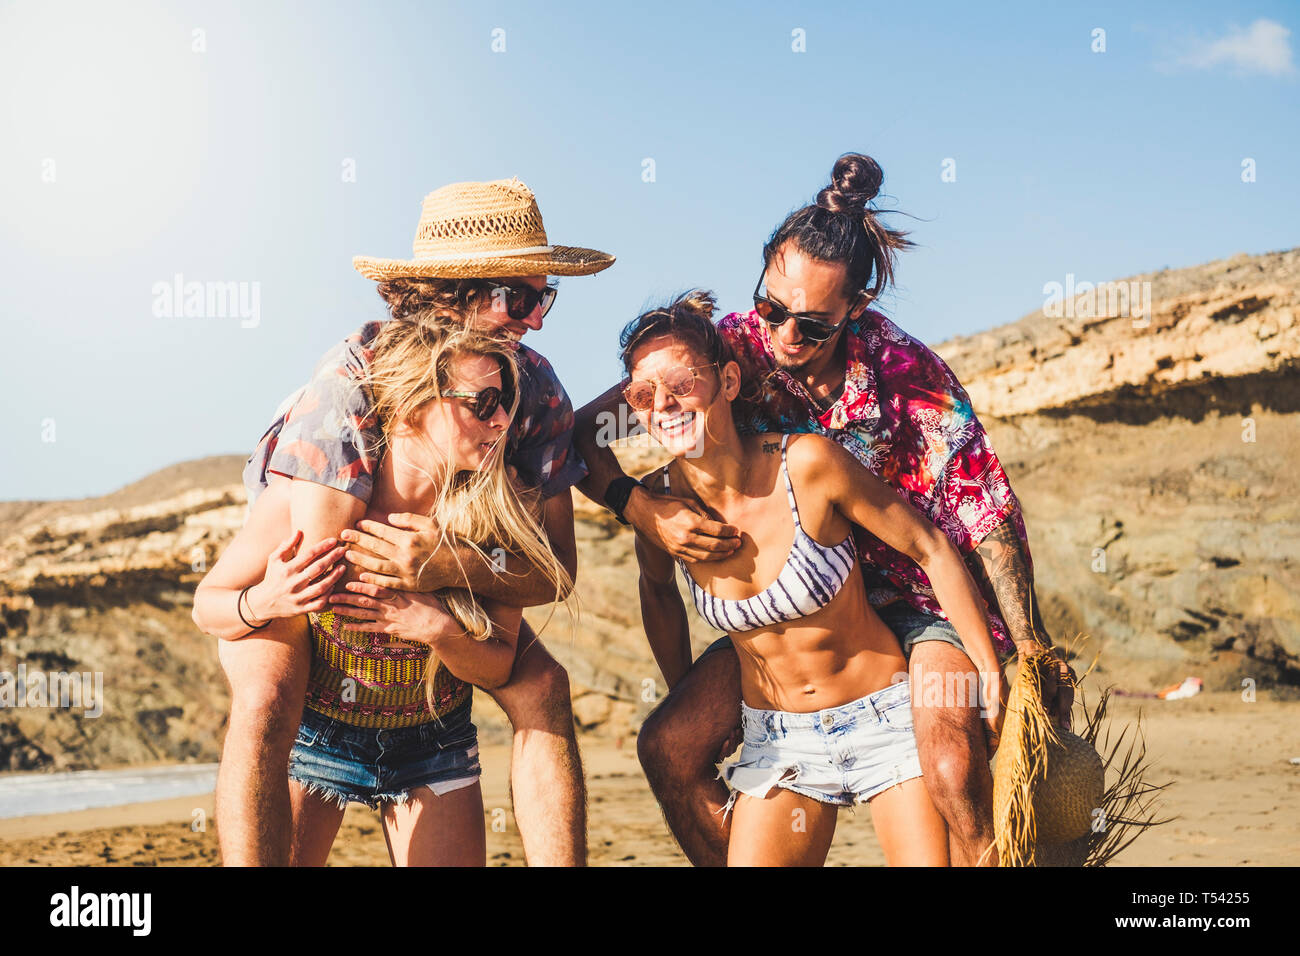 Cheerful people two couples laugh and have fun together - friends enjoying the summer holiday vacation at the berach - girls carrying boys - beautiful Stock Photo